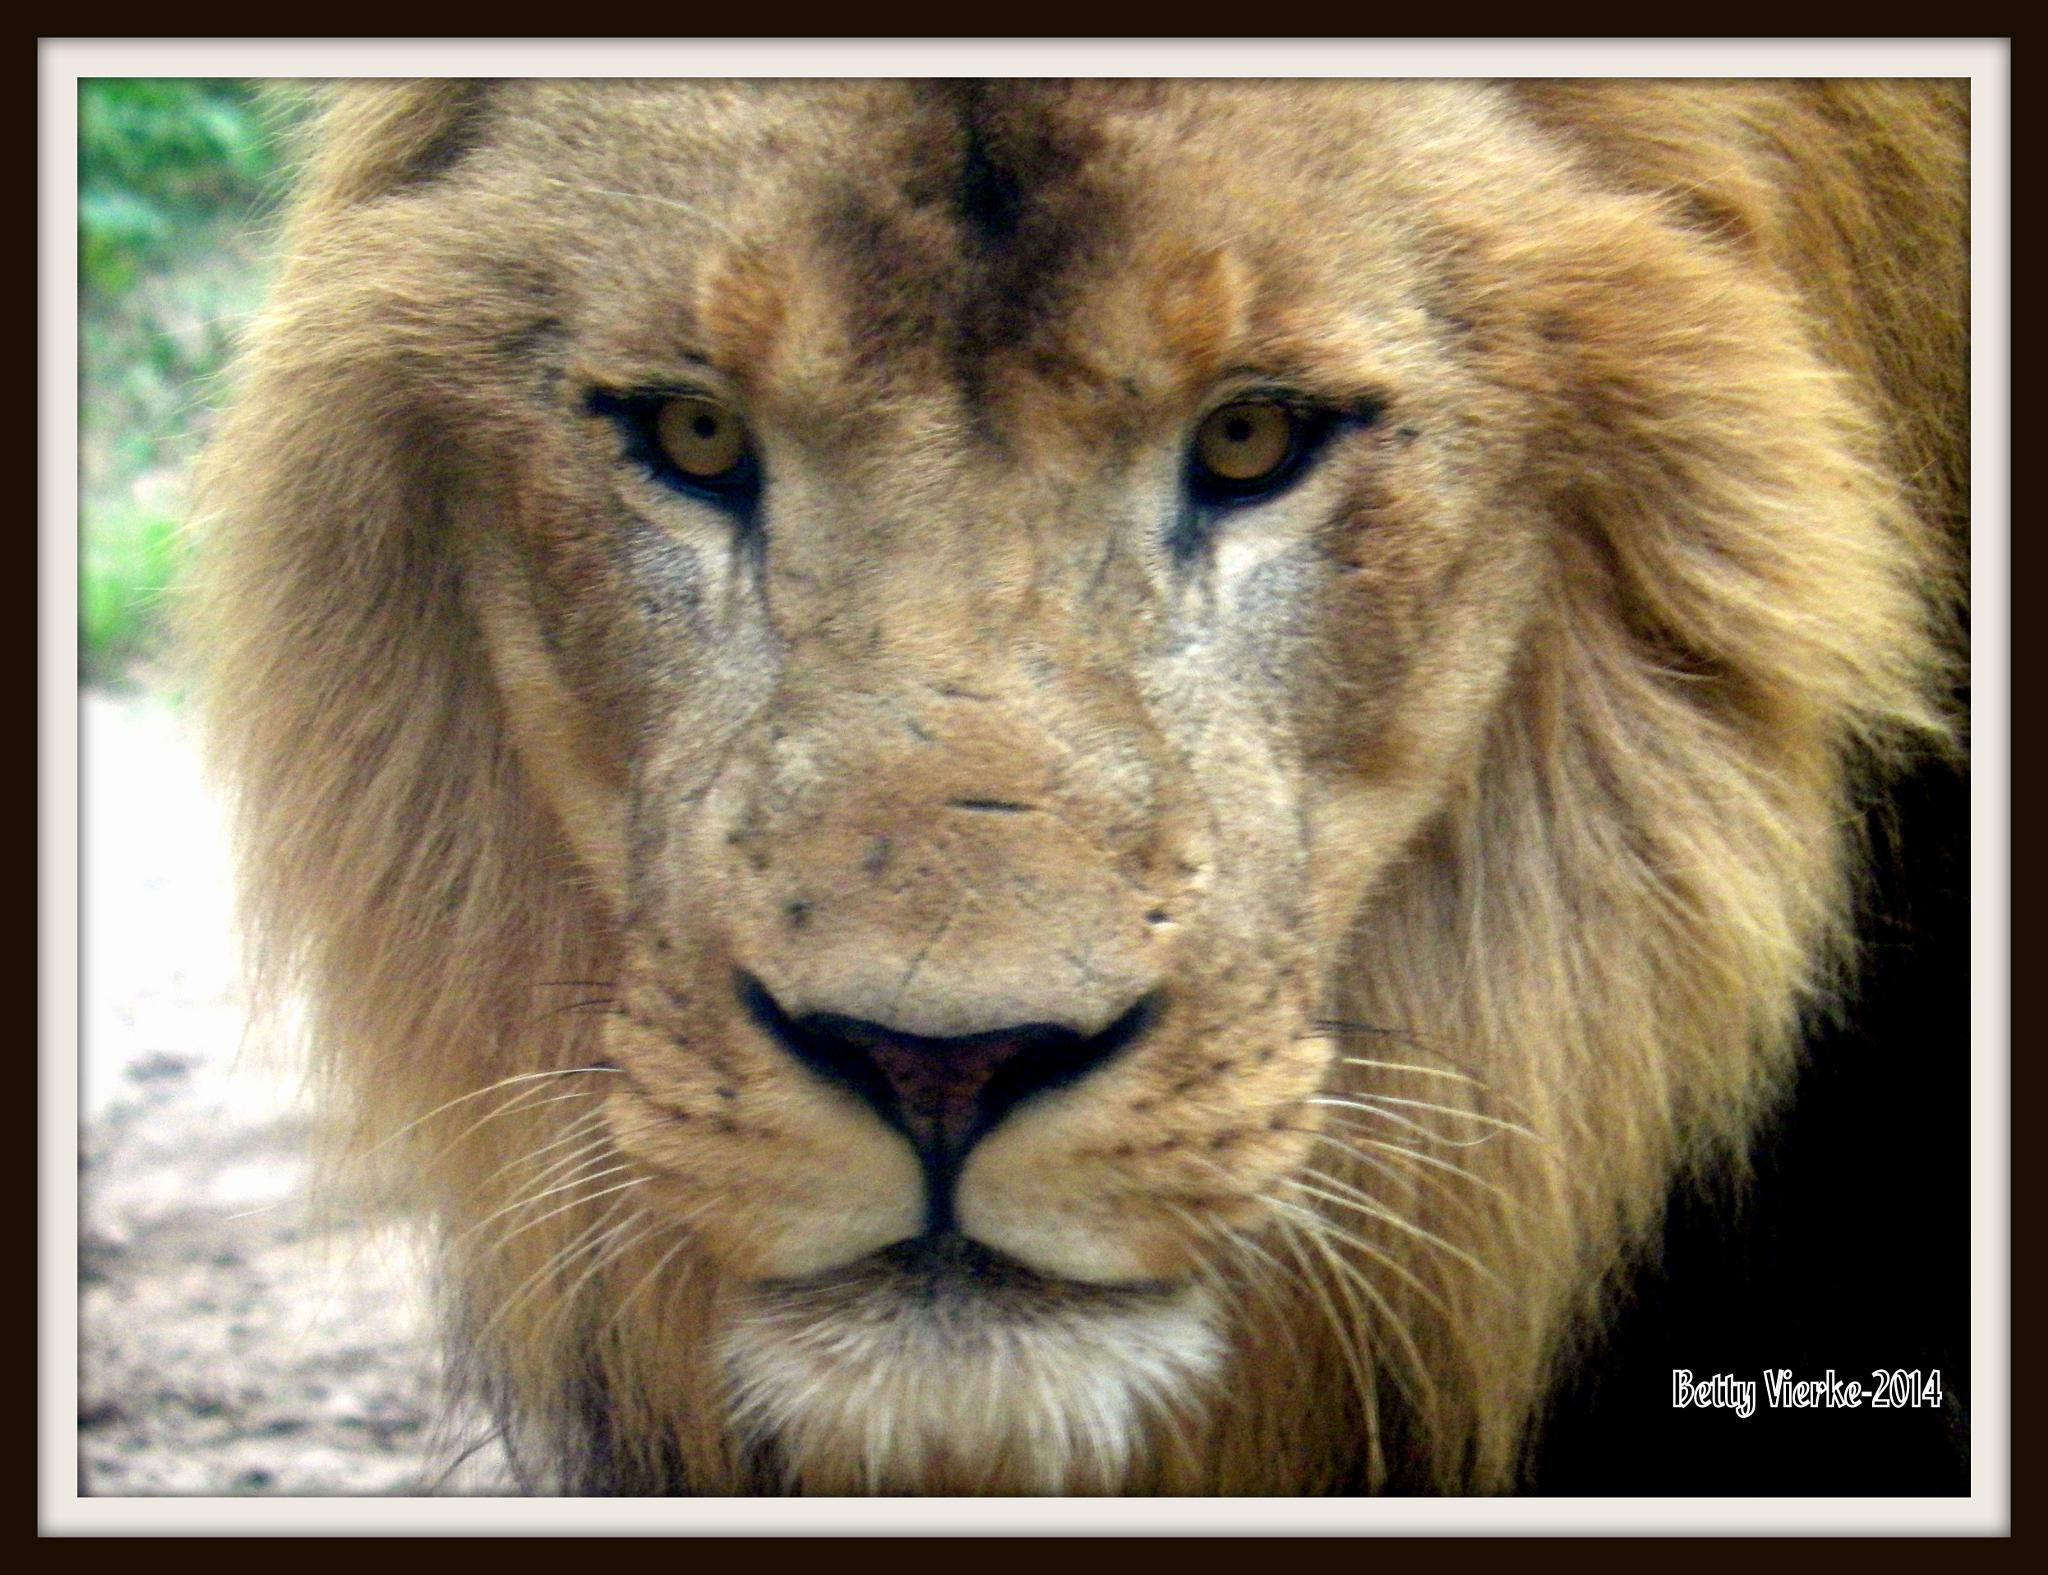 King of the Jungle by BVierke